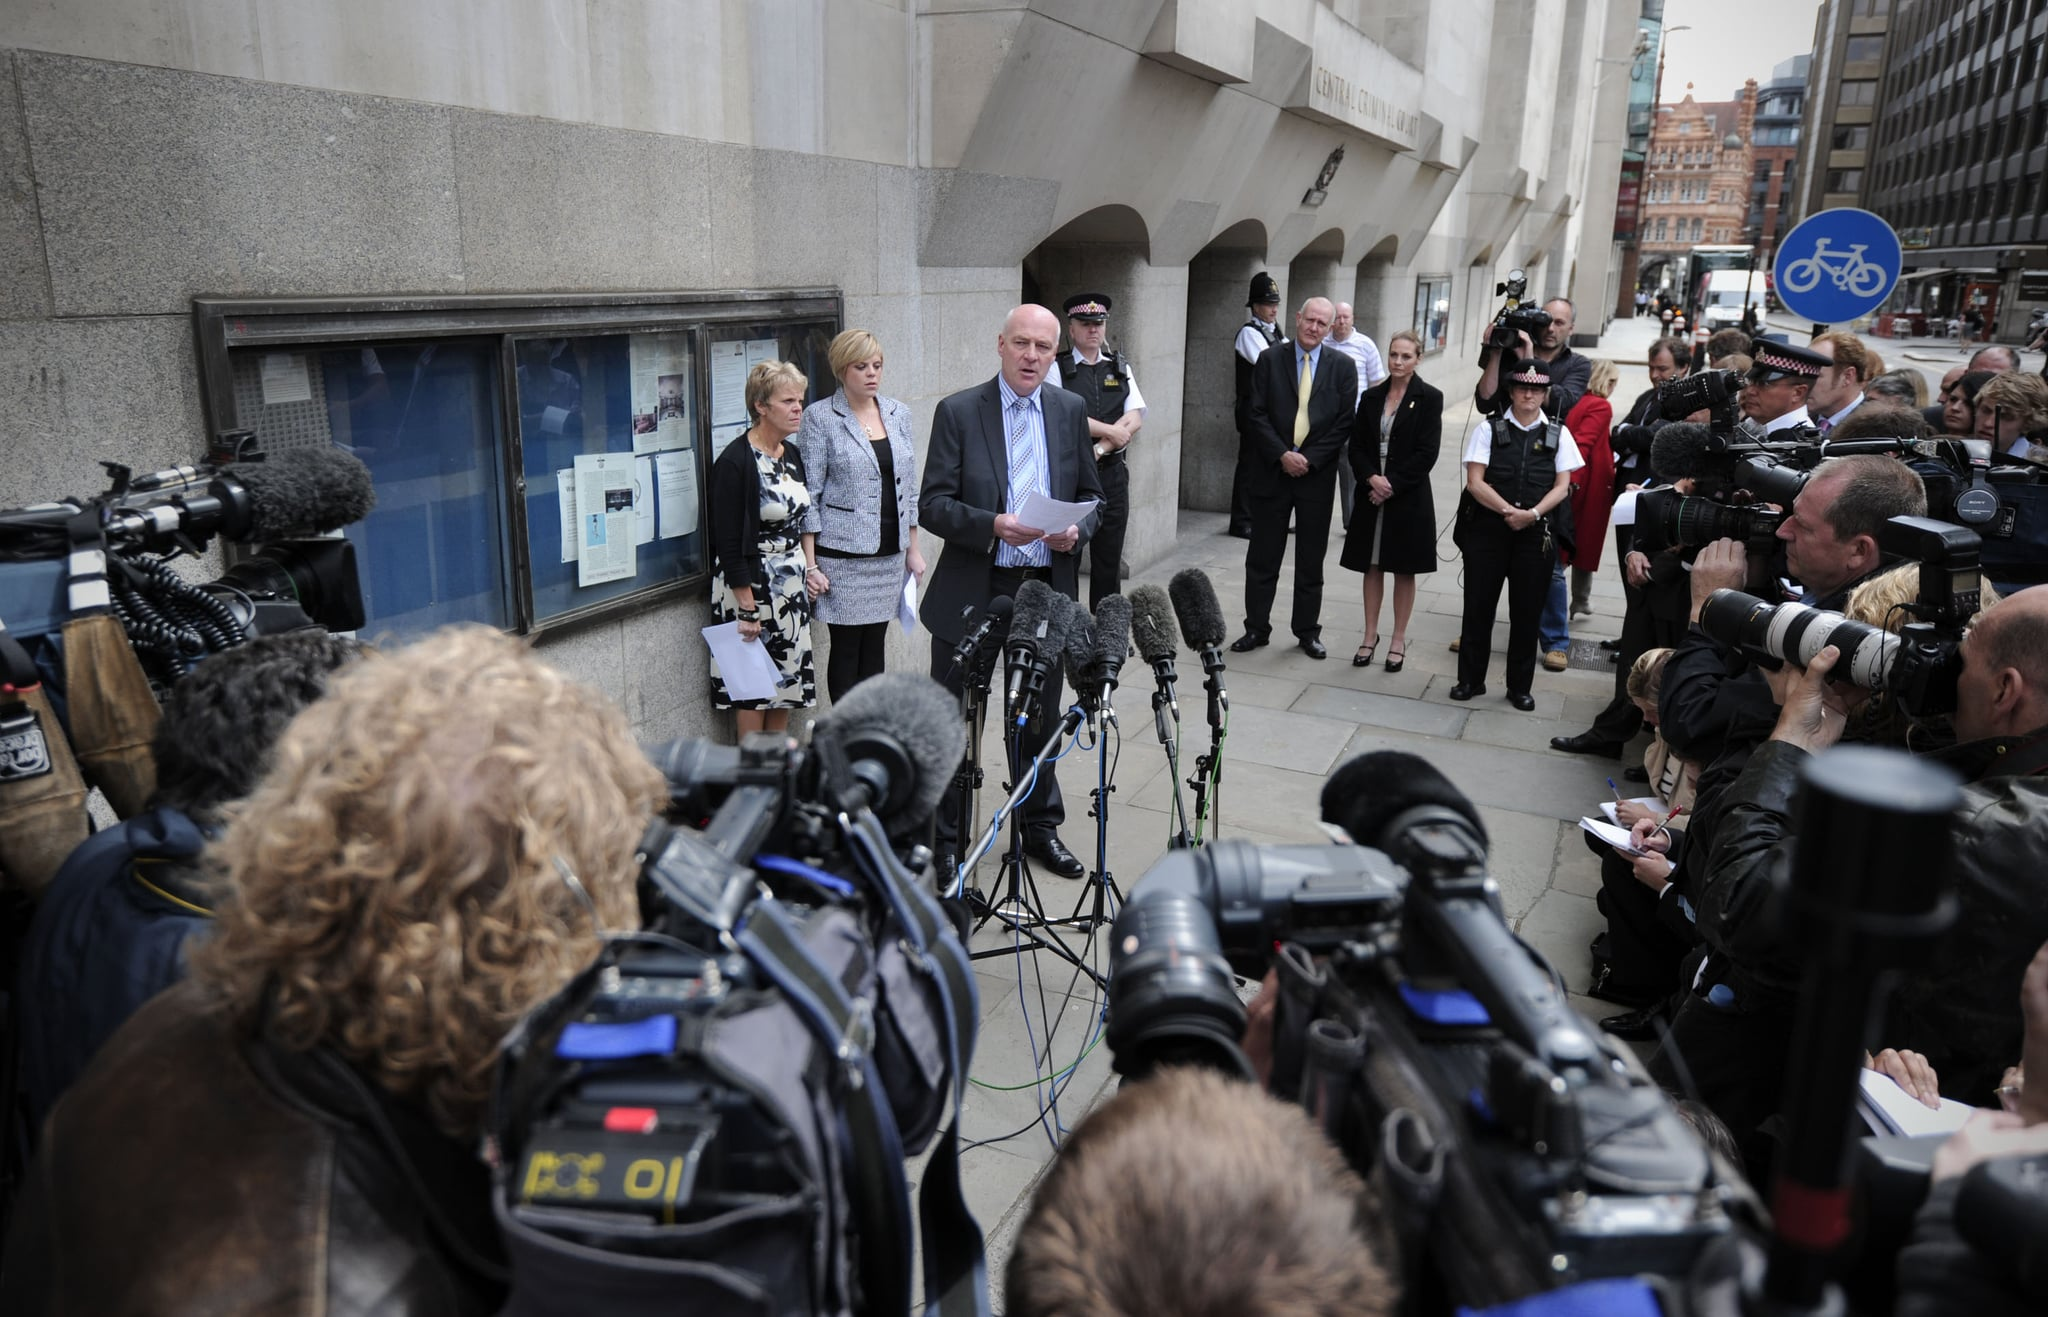 The mother and sister of murdered schoolgirl Amanda Dowler, Sally (L) and Gemma (2nd L), listen as father Bob Dowler (3rd L) reads a statement outside the Old Bailey in central London, on June 24, 2011. Surrey Police apologised today for mistakes in the Milly Dowler investigation. Convicted killer Levi Bellfield was given a second whole-life jail term today for the murder of schoolgirl Milly Dowler. Relatives of the 13-year-old, snatched from the street on her way home in March 2002, hugged each other as Bellfield was told he would never be released. He is already serving a whole-life term for the murders of French student Amelie Delagrange and Marsha McDonnell and the attempted murder of Kate Sheedy.  AFP PHOTO / CARL COURT (Photo credit should read CARL COURT/AFP/Getty Images)